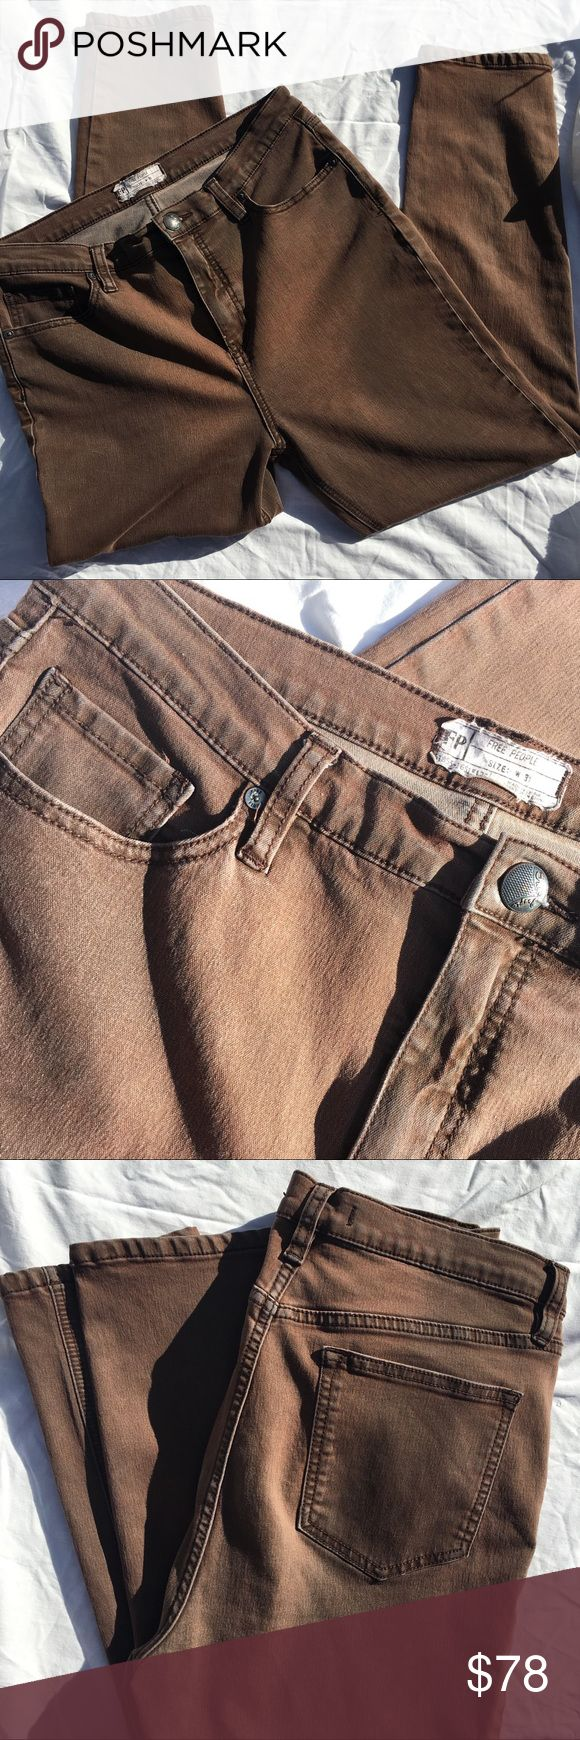 """Free People brown skinny jeans, factory faded Free People faded brown, Five-pocket stretchy cropped skinny jeans with high-rise waist. Zipper and button fly closure. The perfect, everyday skinny jean! 11.5""""  26"""" length Free People Jeans Skinny"""